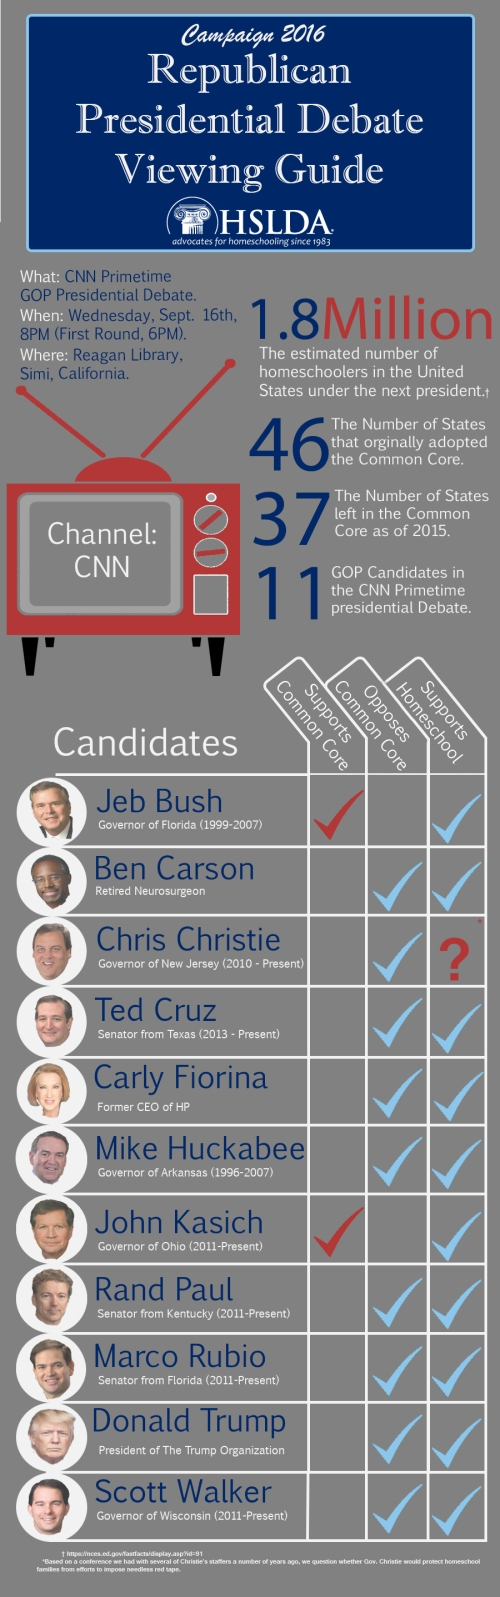 Republican Presidential Debate Viewing Guide | HSLDA Blog